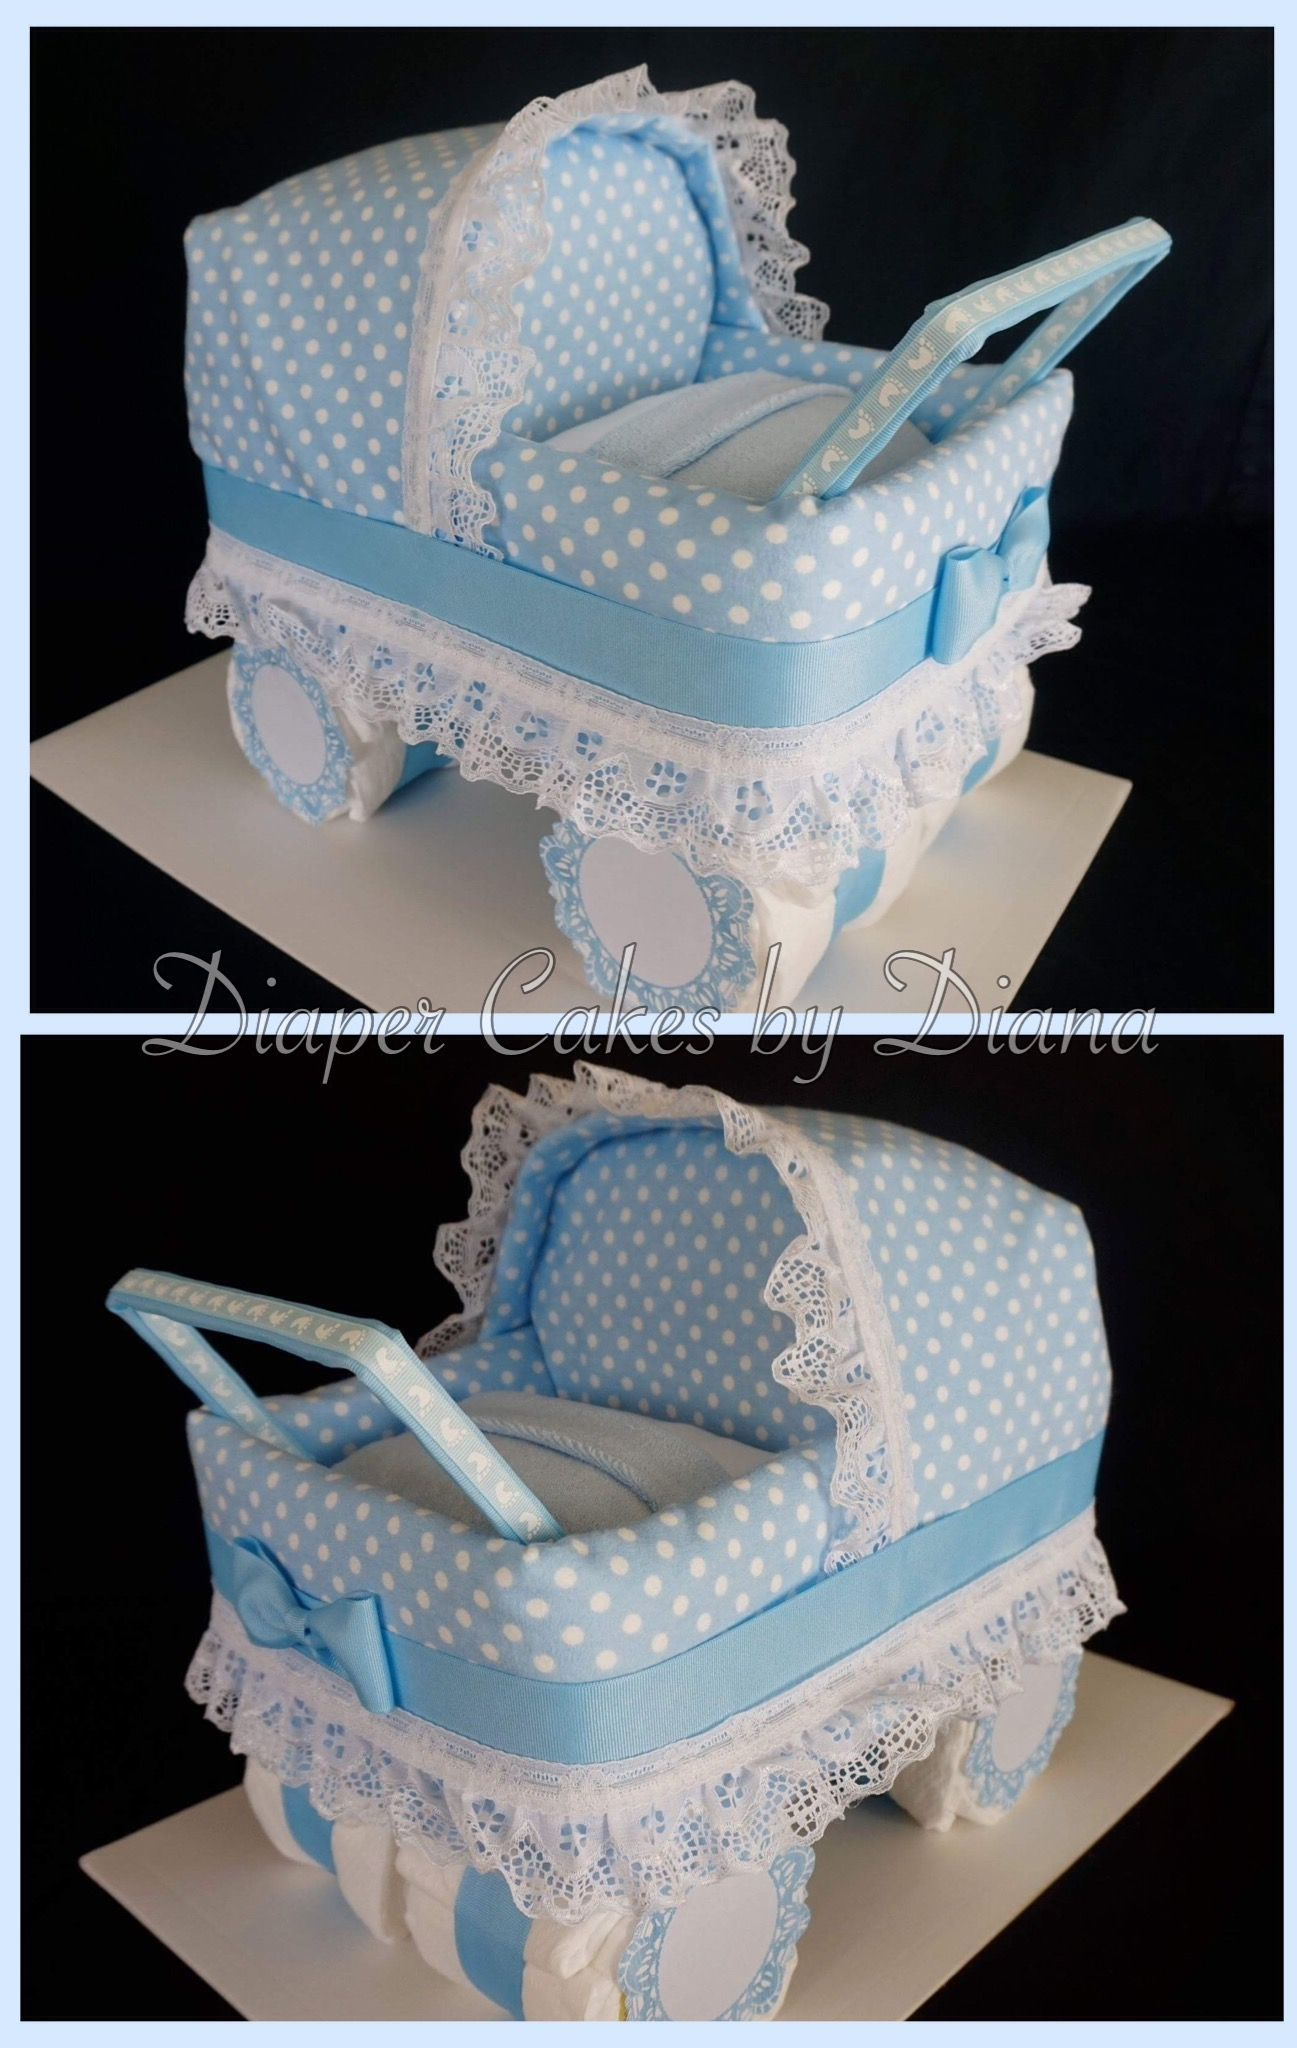 Mini mouse carriage diaper cake that i custom made on my own using baby boy carriage diaper cake facebookdiapercakesbydiana negle Images